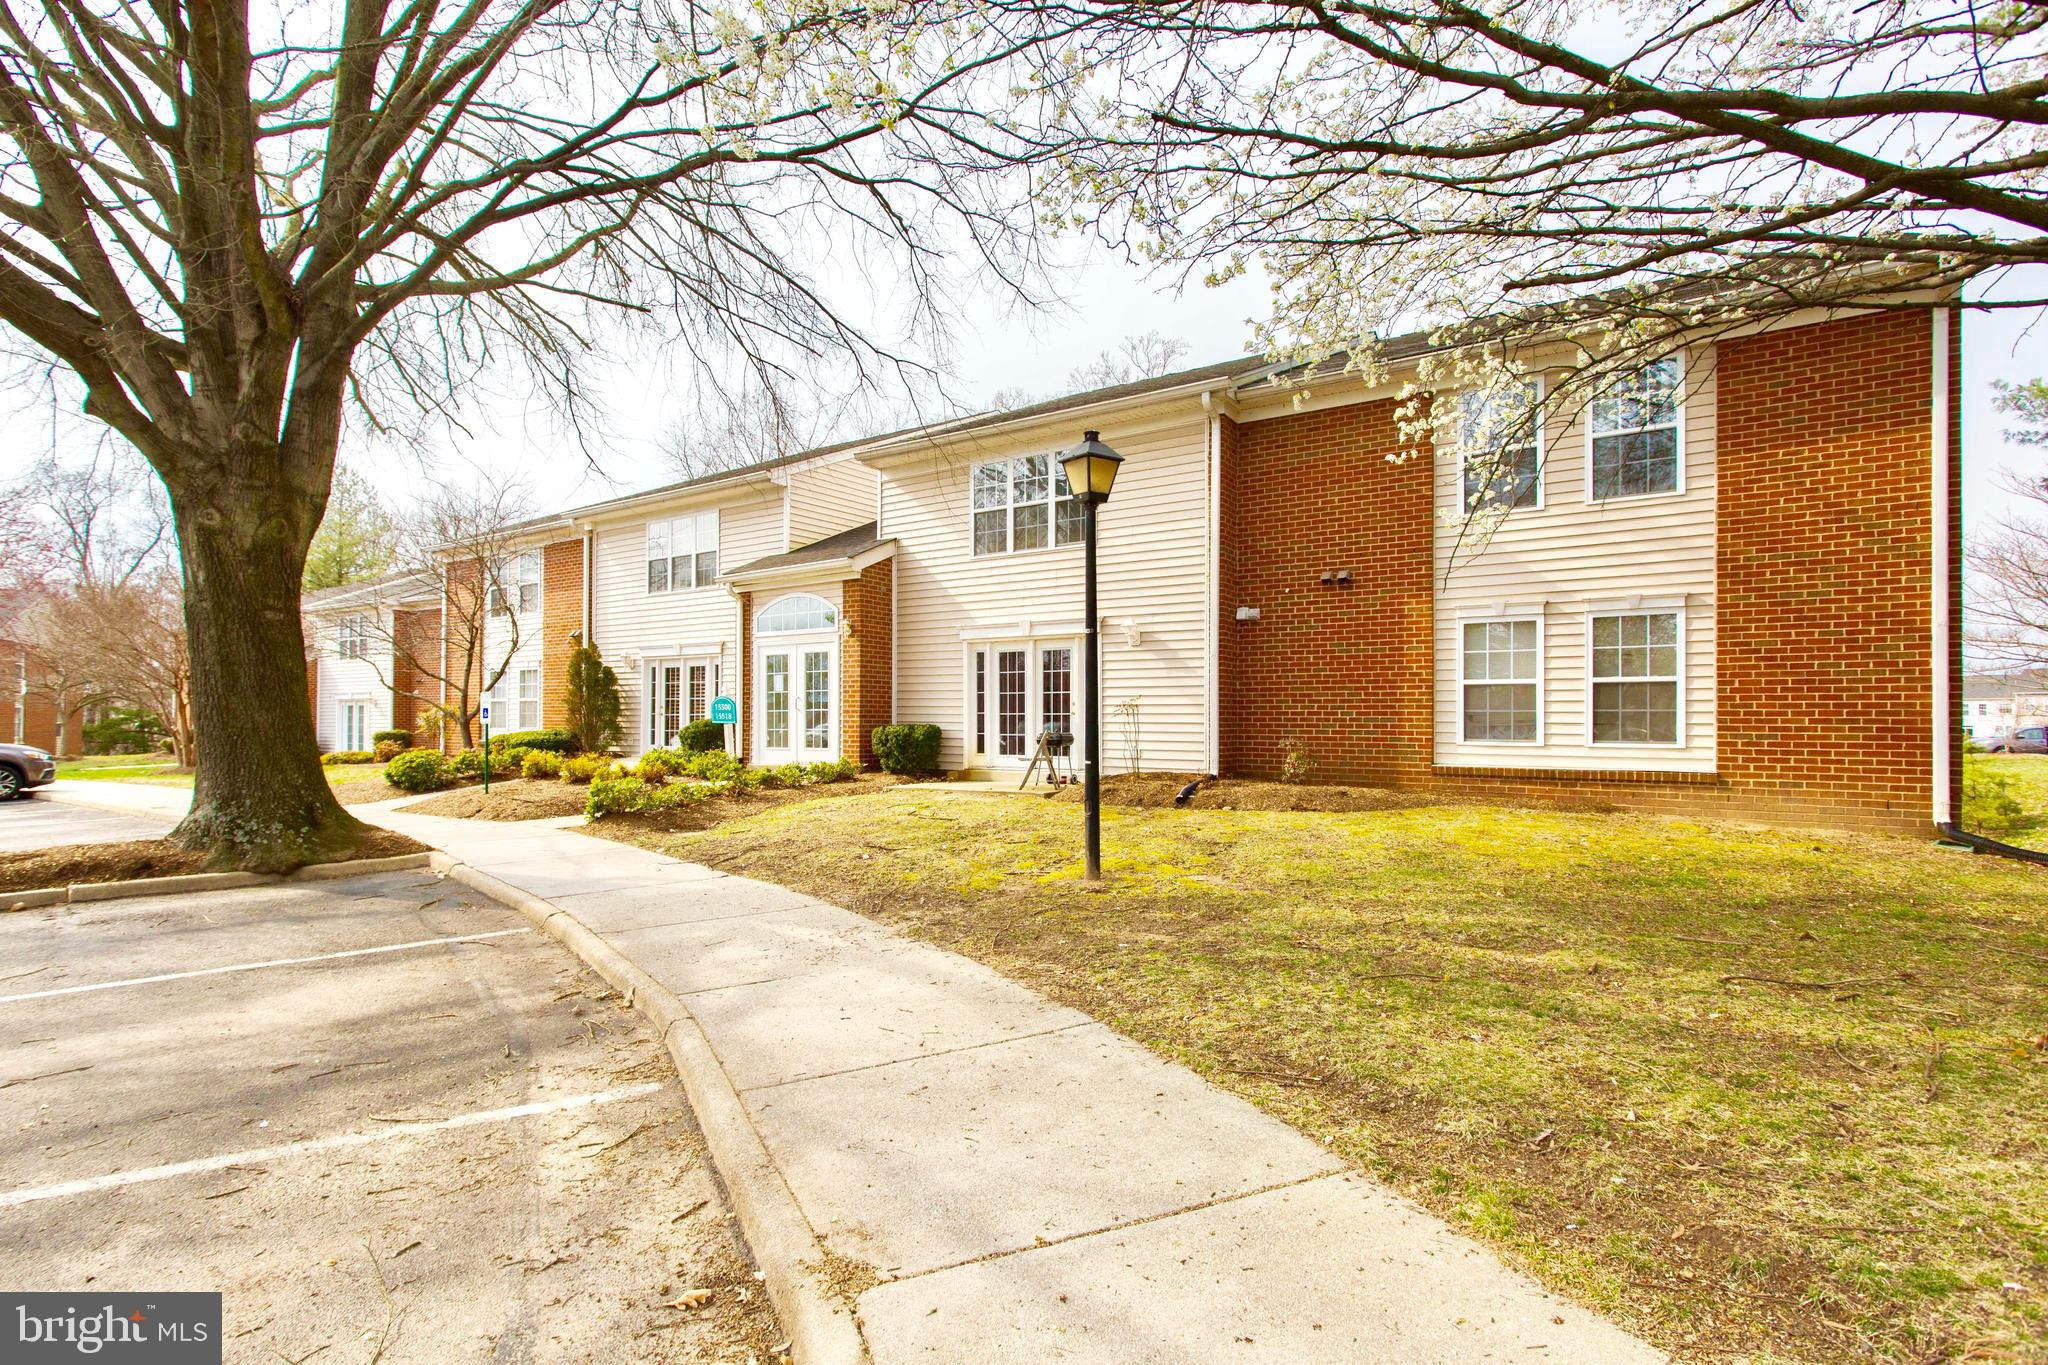 Rare opportunity in AMAZING location, minutes from schools, shopping, major highways and VRE! Sleek and modern with 2 Bedrooms, 1.5 Bathrooms and quality features. Luxe Kitchen with granite counters, stainless steel appliances and breakfast window opening to main living area. Many recent updates includes refinished floors and fresh paint throughout. Enjoy hassle-free living with most utilities included in condo fees. Additional storage unit in building. Amazing community amenities include playground, picnic area and tennis court that is just around the corner! Located in a commuters dream location, with everything you could need just minutes away, this truly is the best of both worlds... Welcome home!